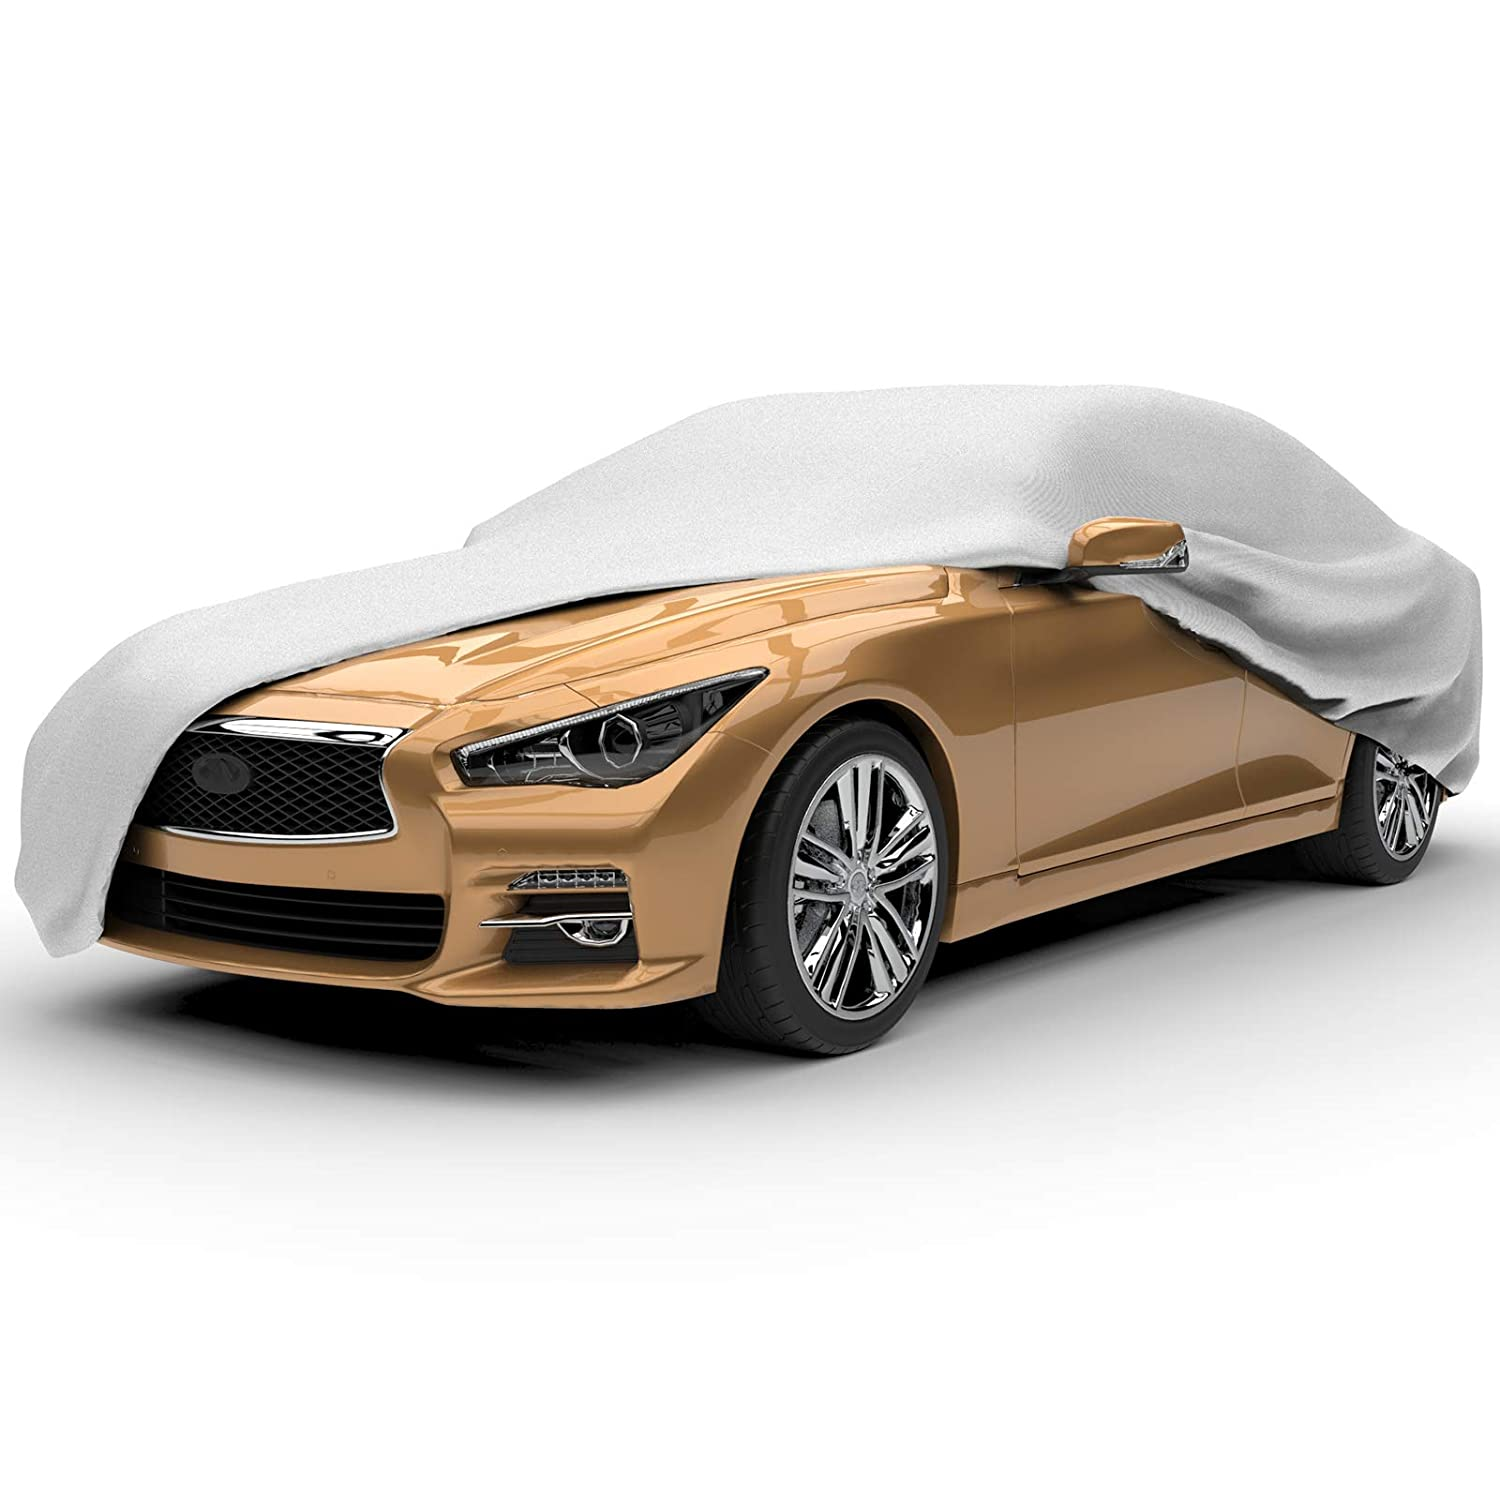 best car covers Budge Lite Car Cover Indoor/Outdoor, Dustproof, UV Resistant, Car Cover Fits Sedans